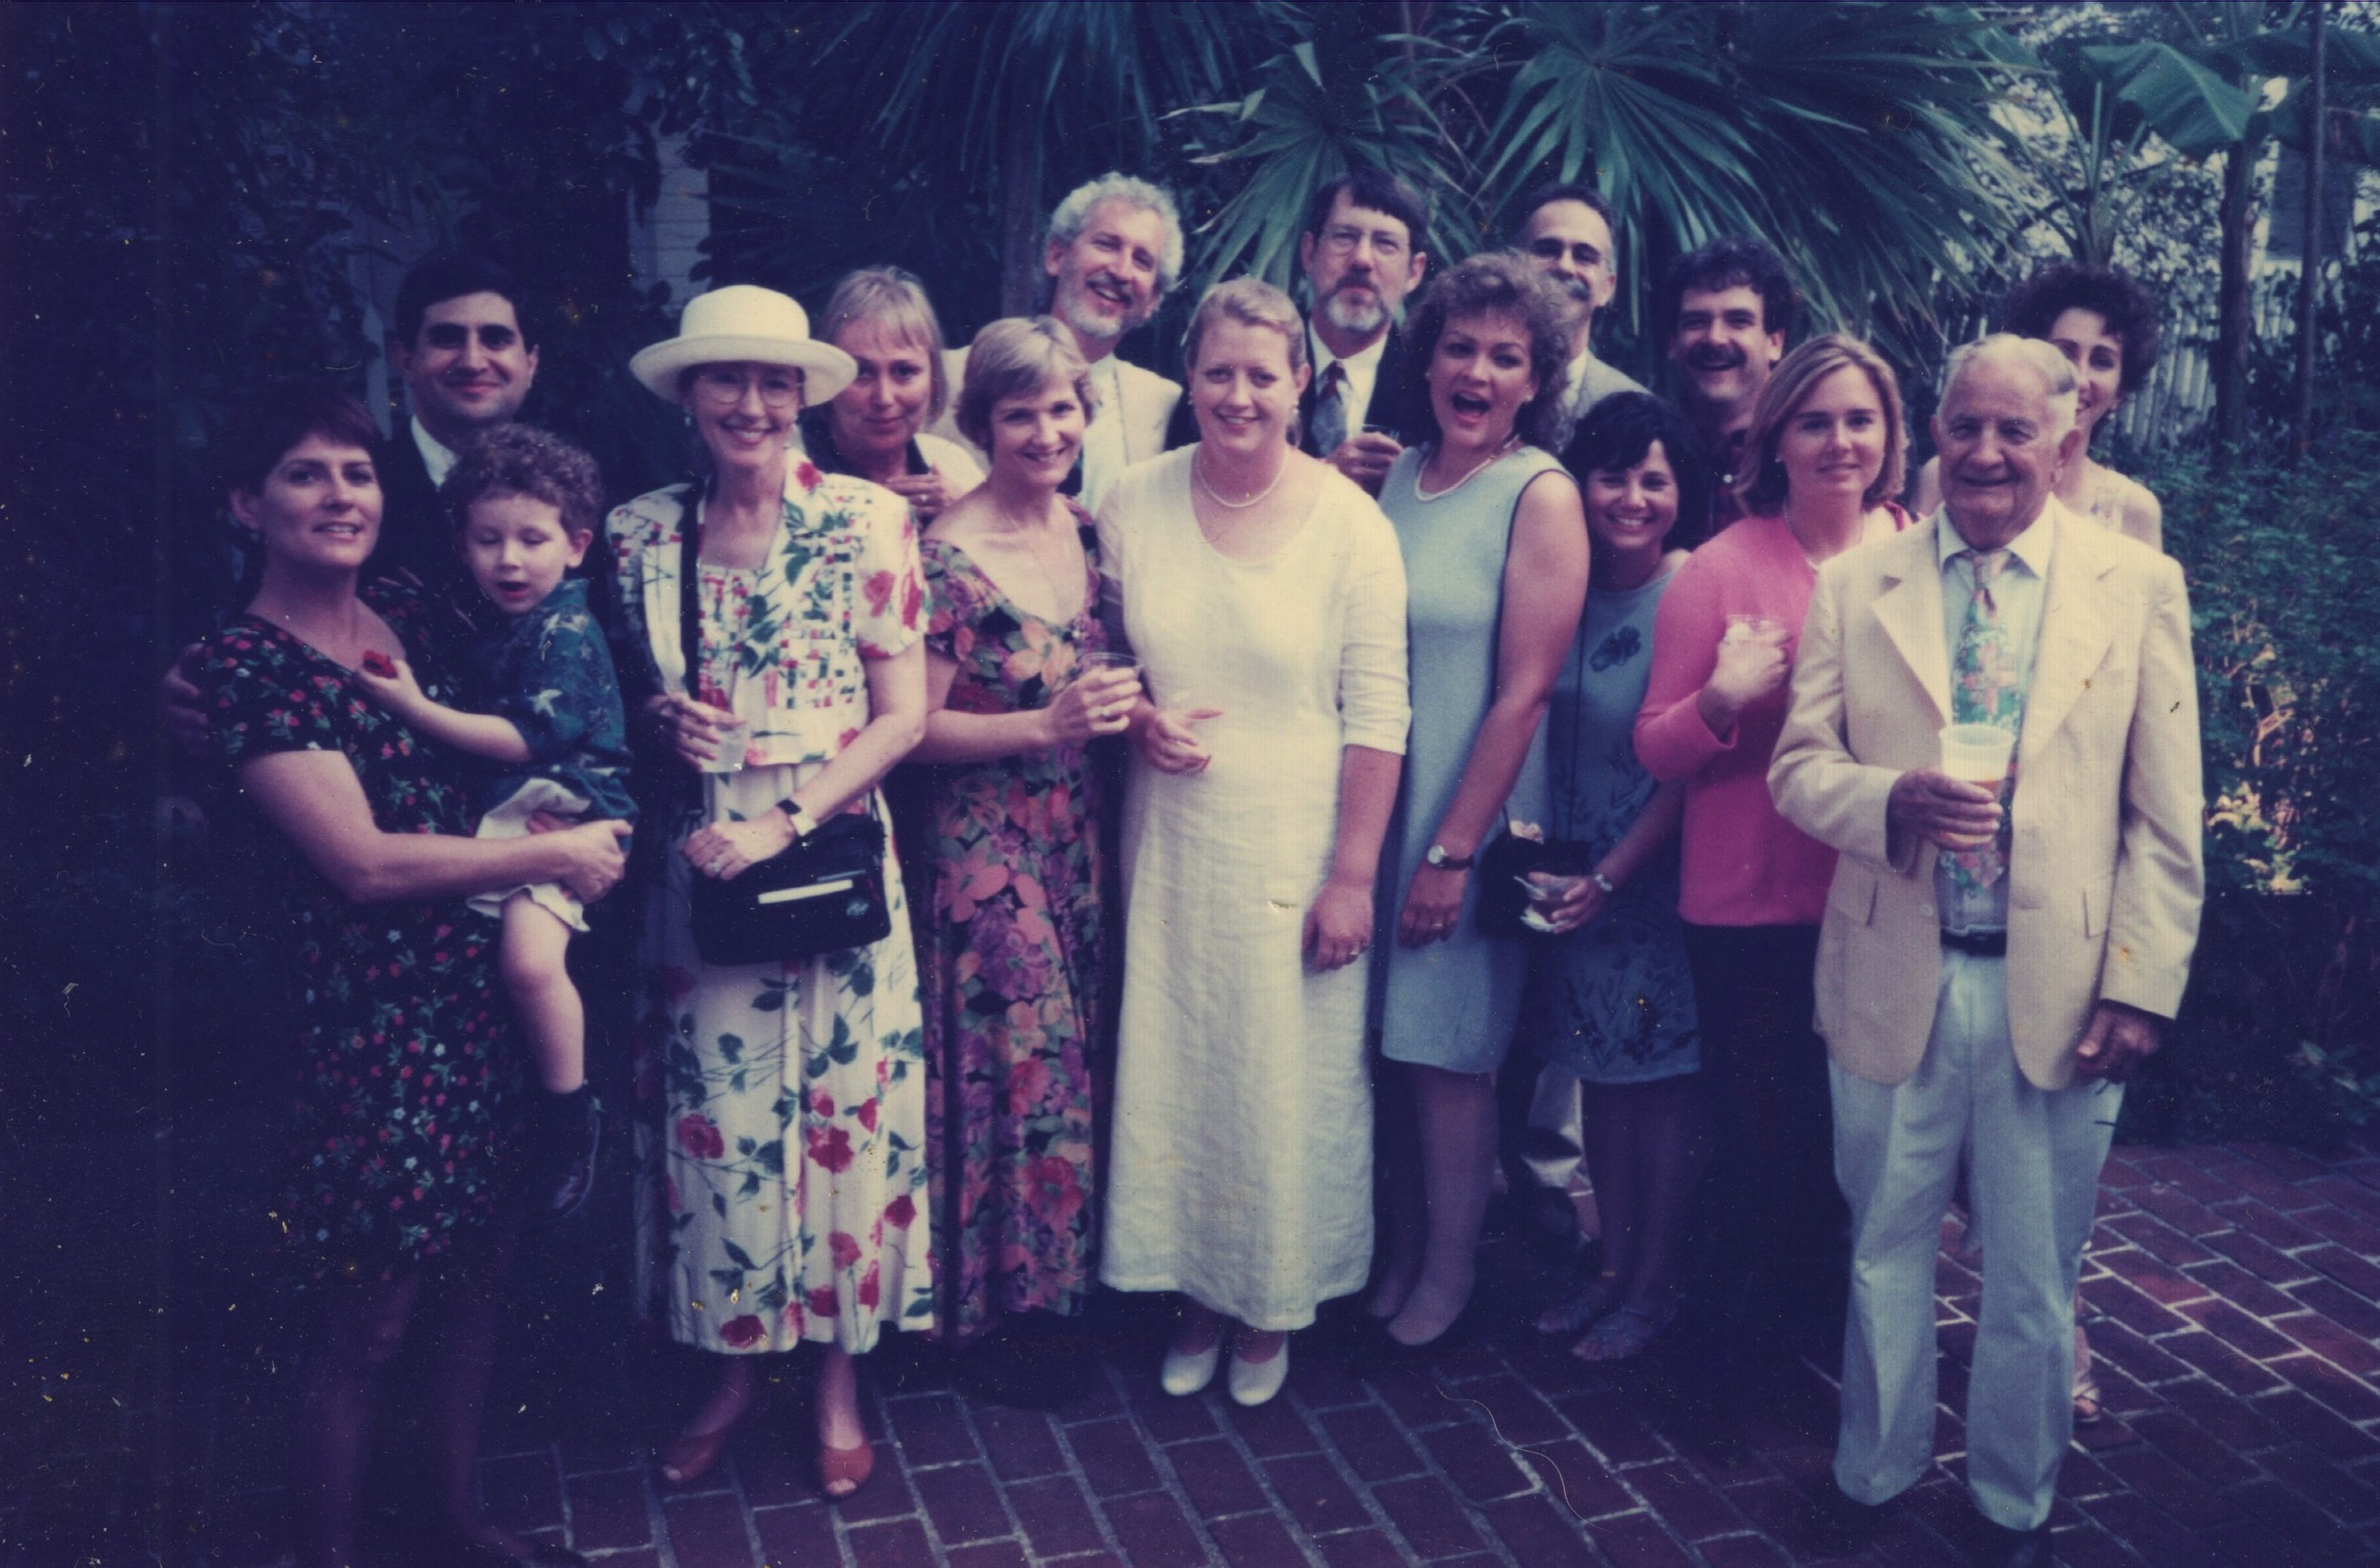 A whole lotta Miami Herald people came to my wedding in 1999. Photo by Rob O'Neal, I think.